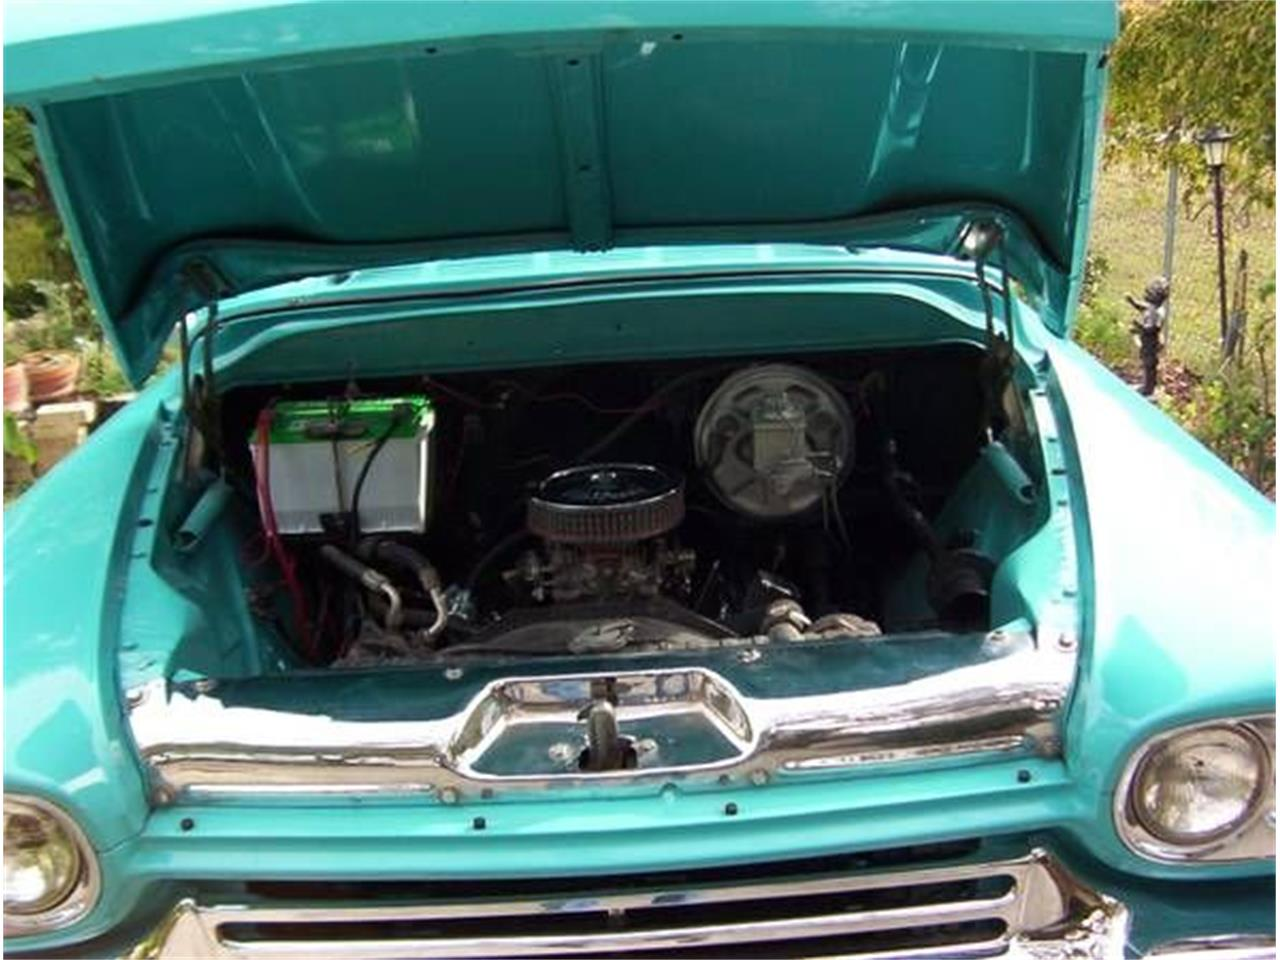 1958 Chevrolet Pickup for sale in Cadillac, MI – photo 7